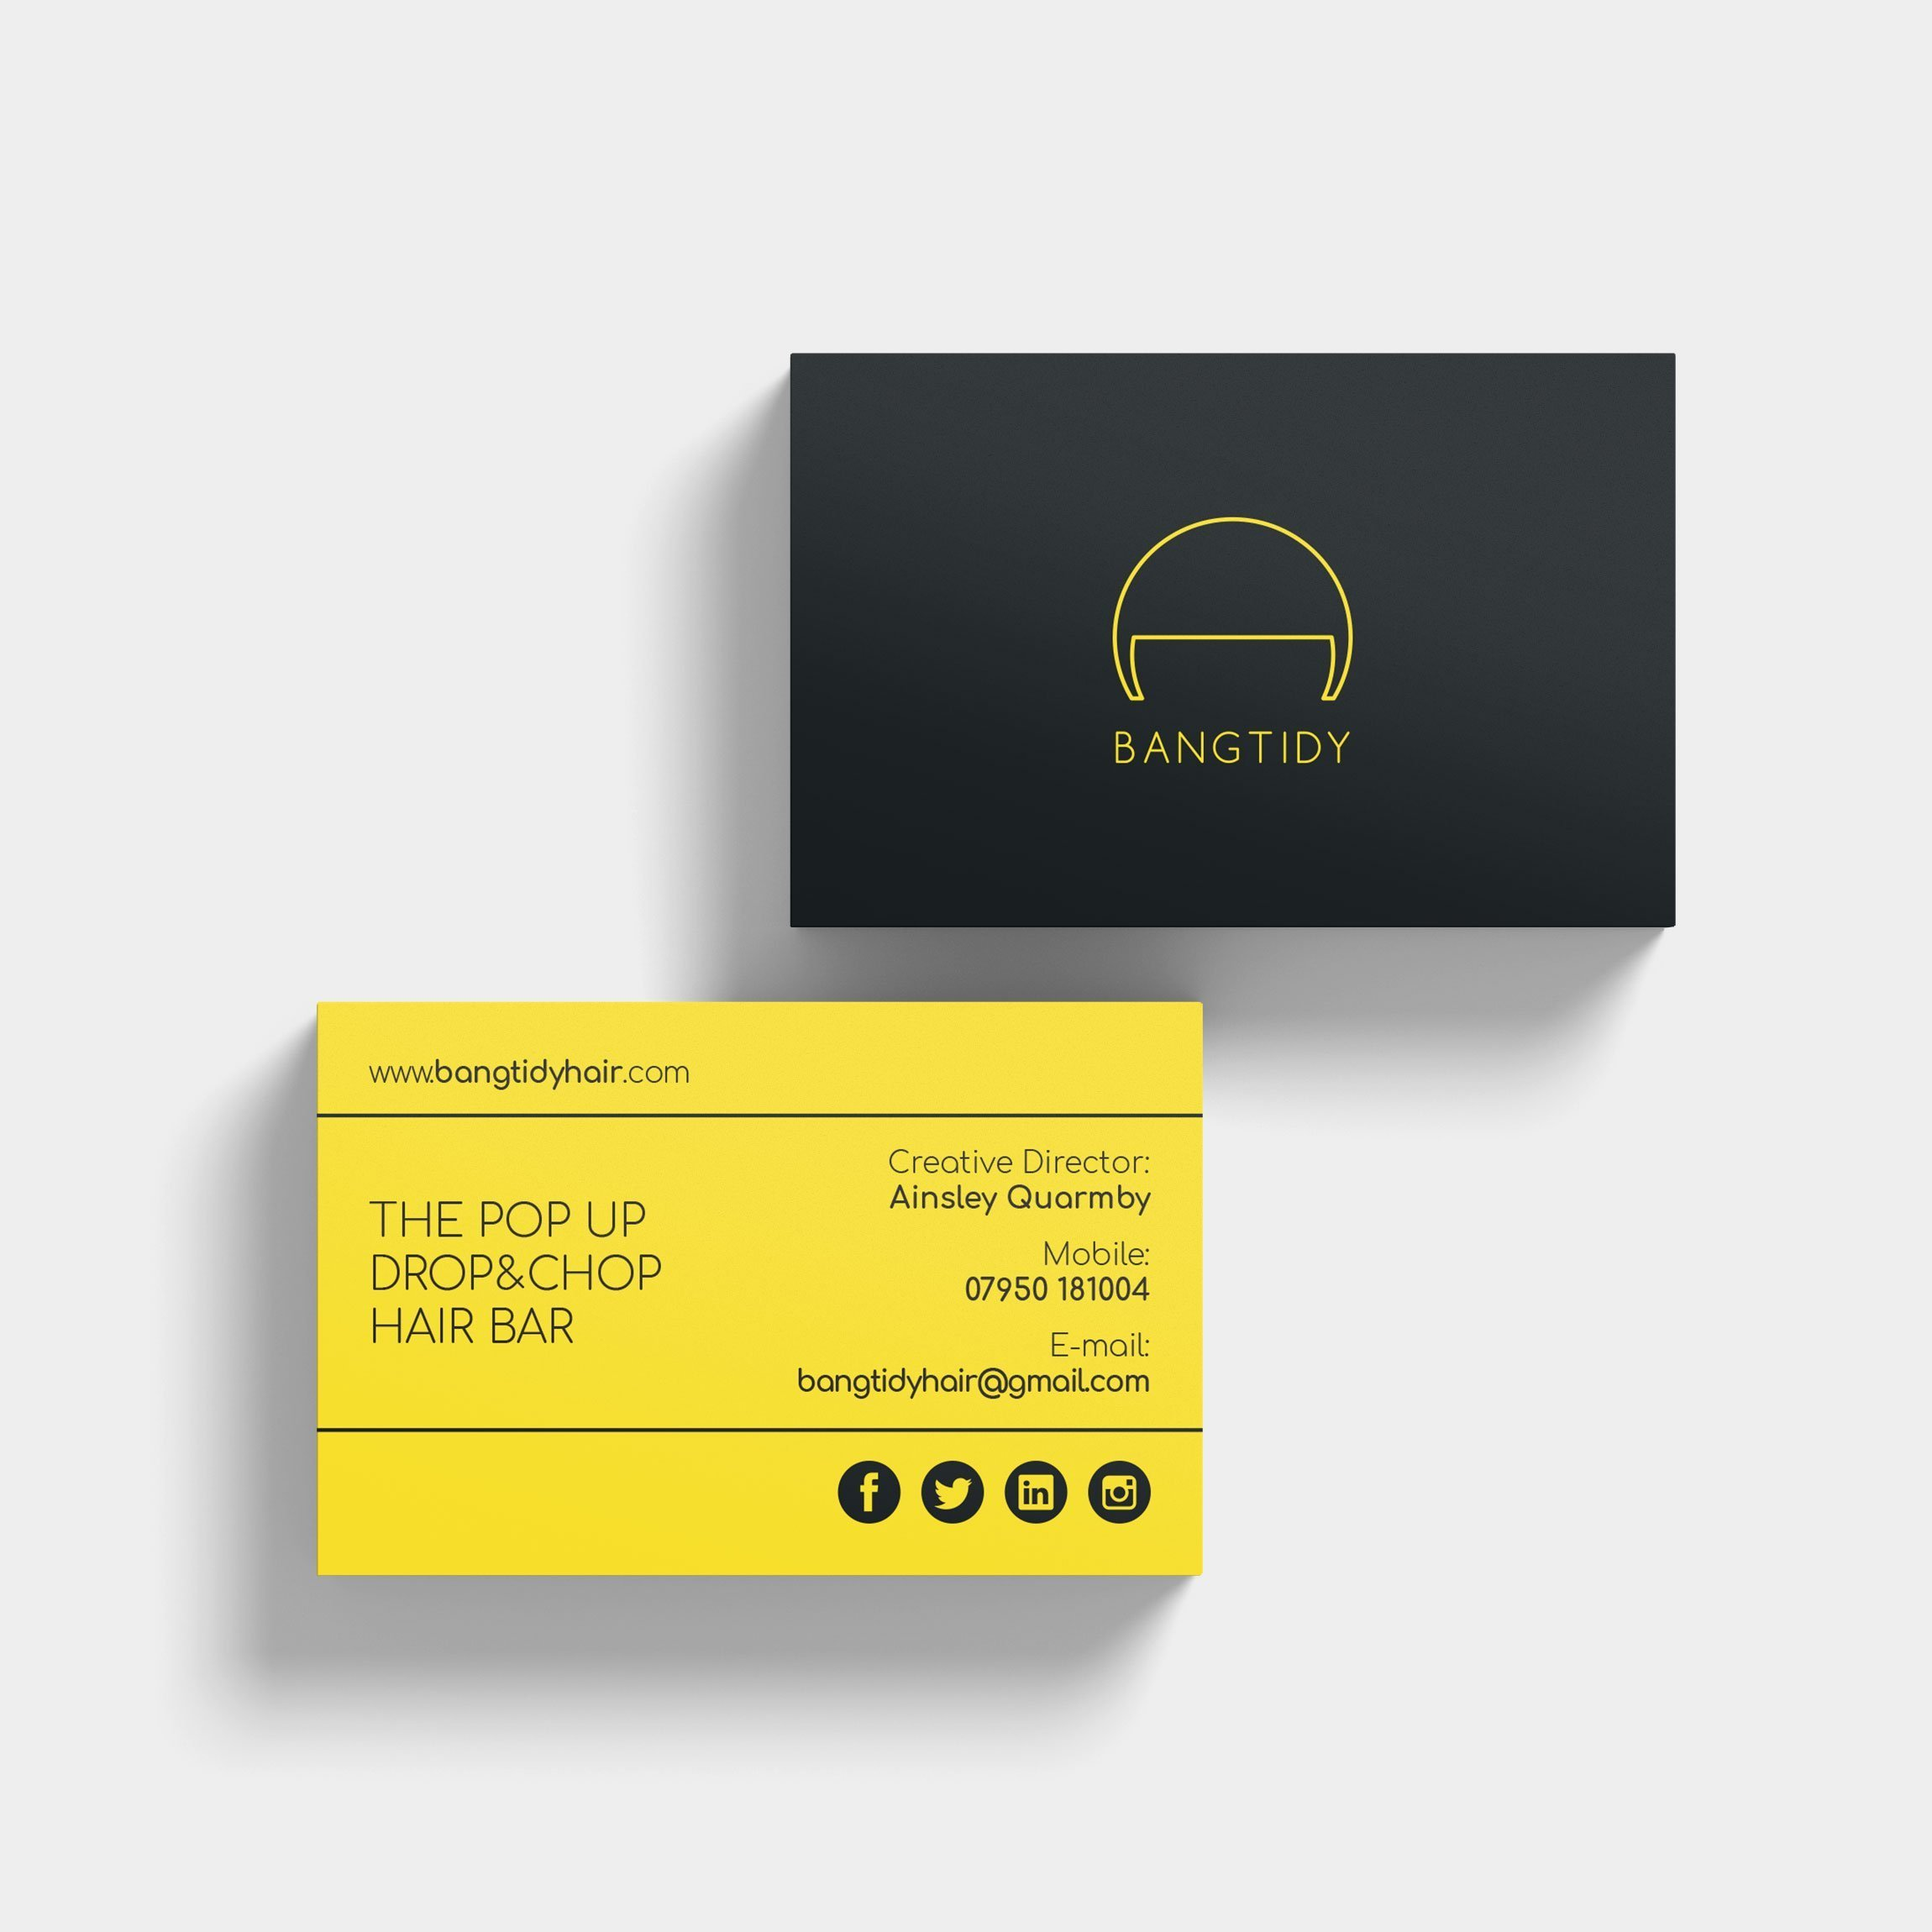 Business Card Design - BangTidy Hair Stylist | Wes Butler Graphic Design